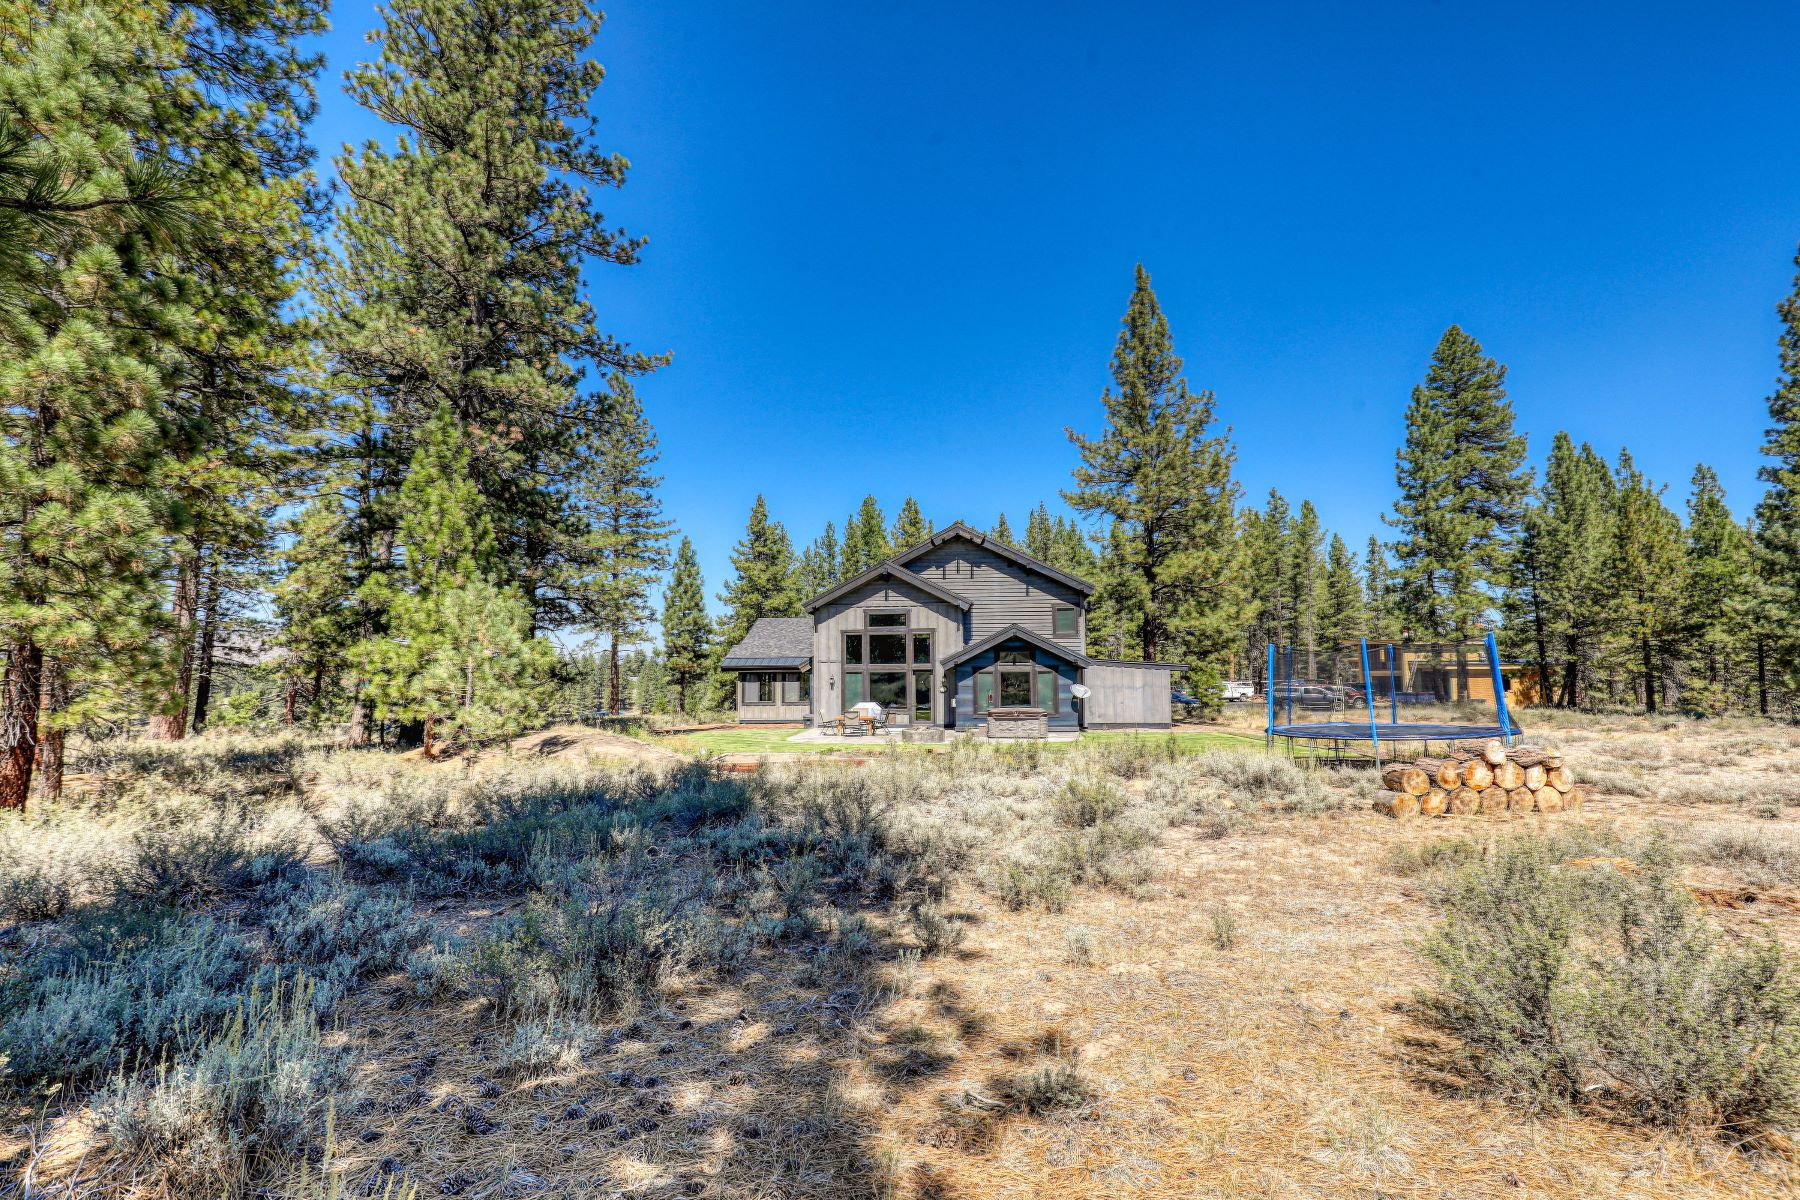 Additional photo for property listing at Tucked Away in Glenshire 10755 Courtenay Lane Truckee, California 96161 United States